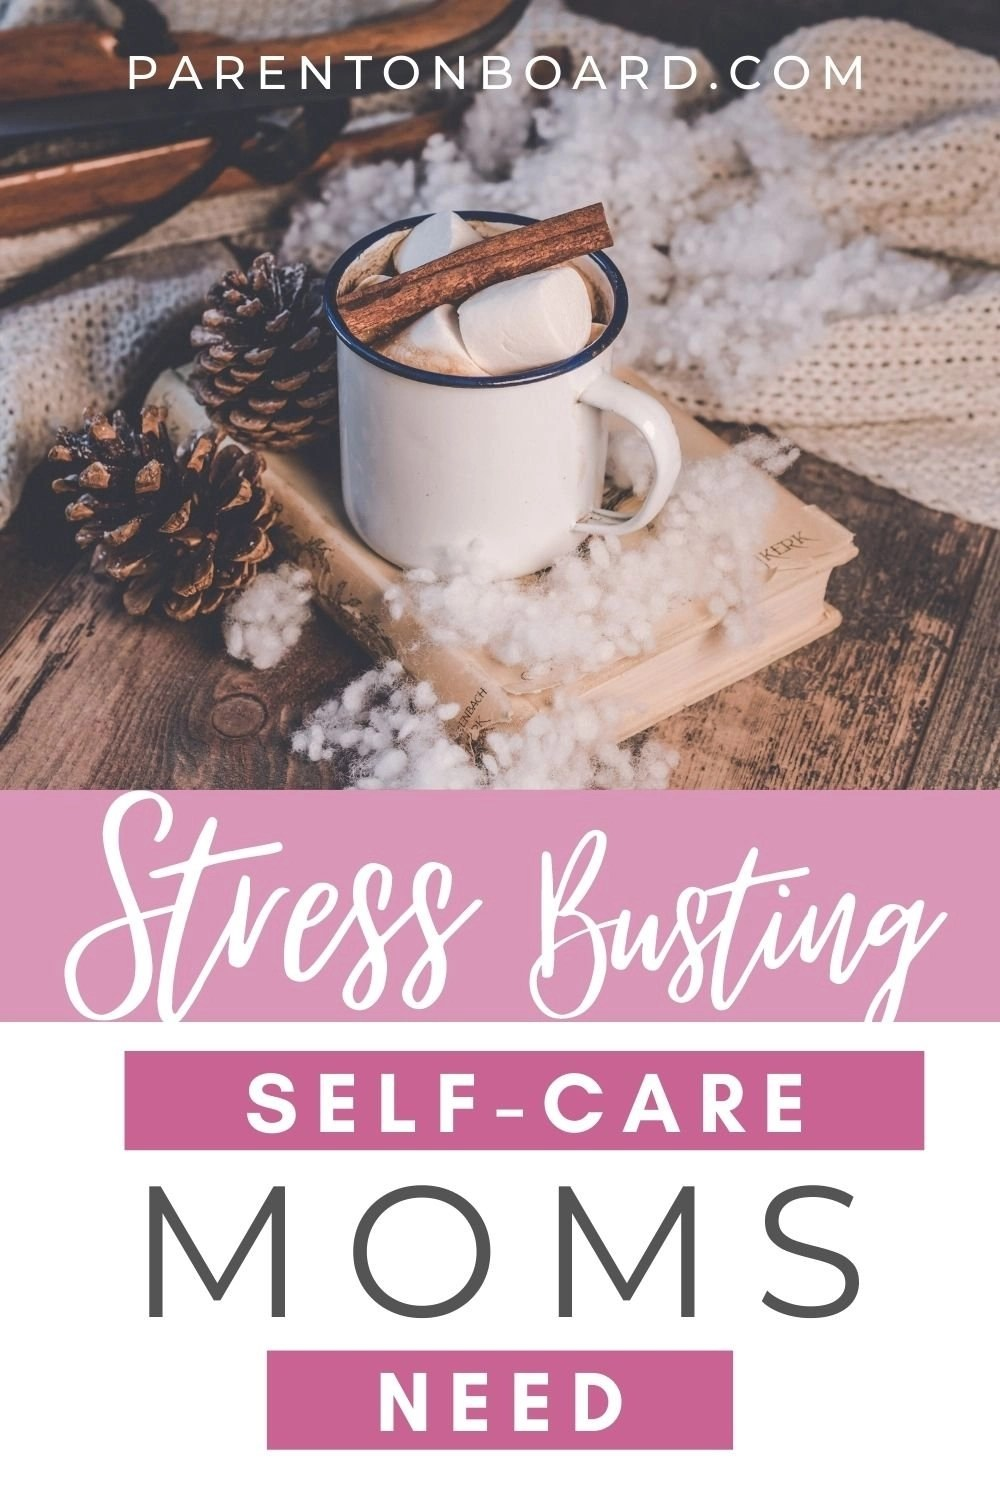 Stress Busting Holiday Self-Care for Moms